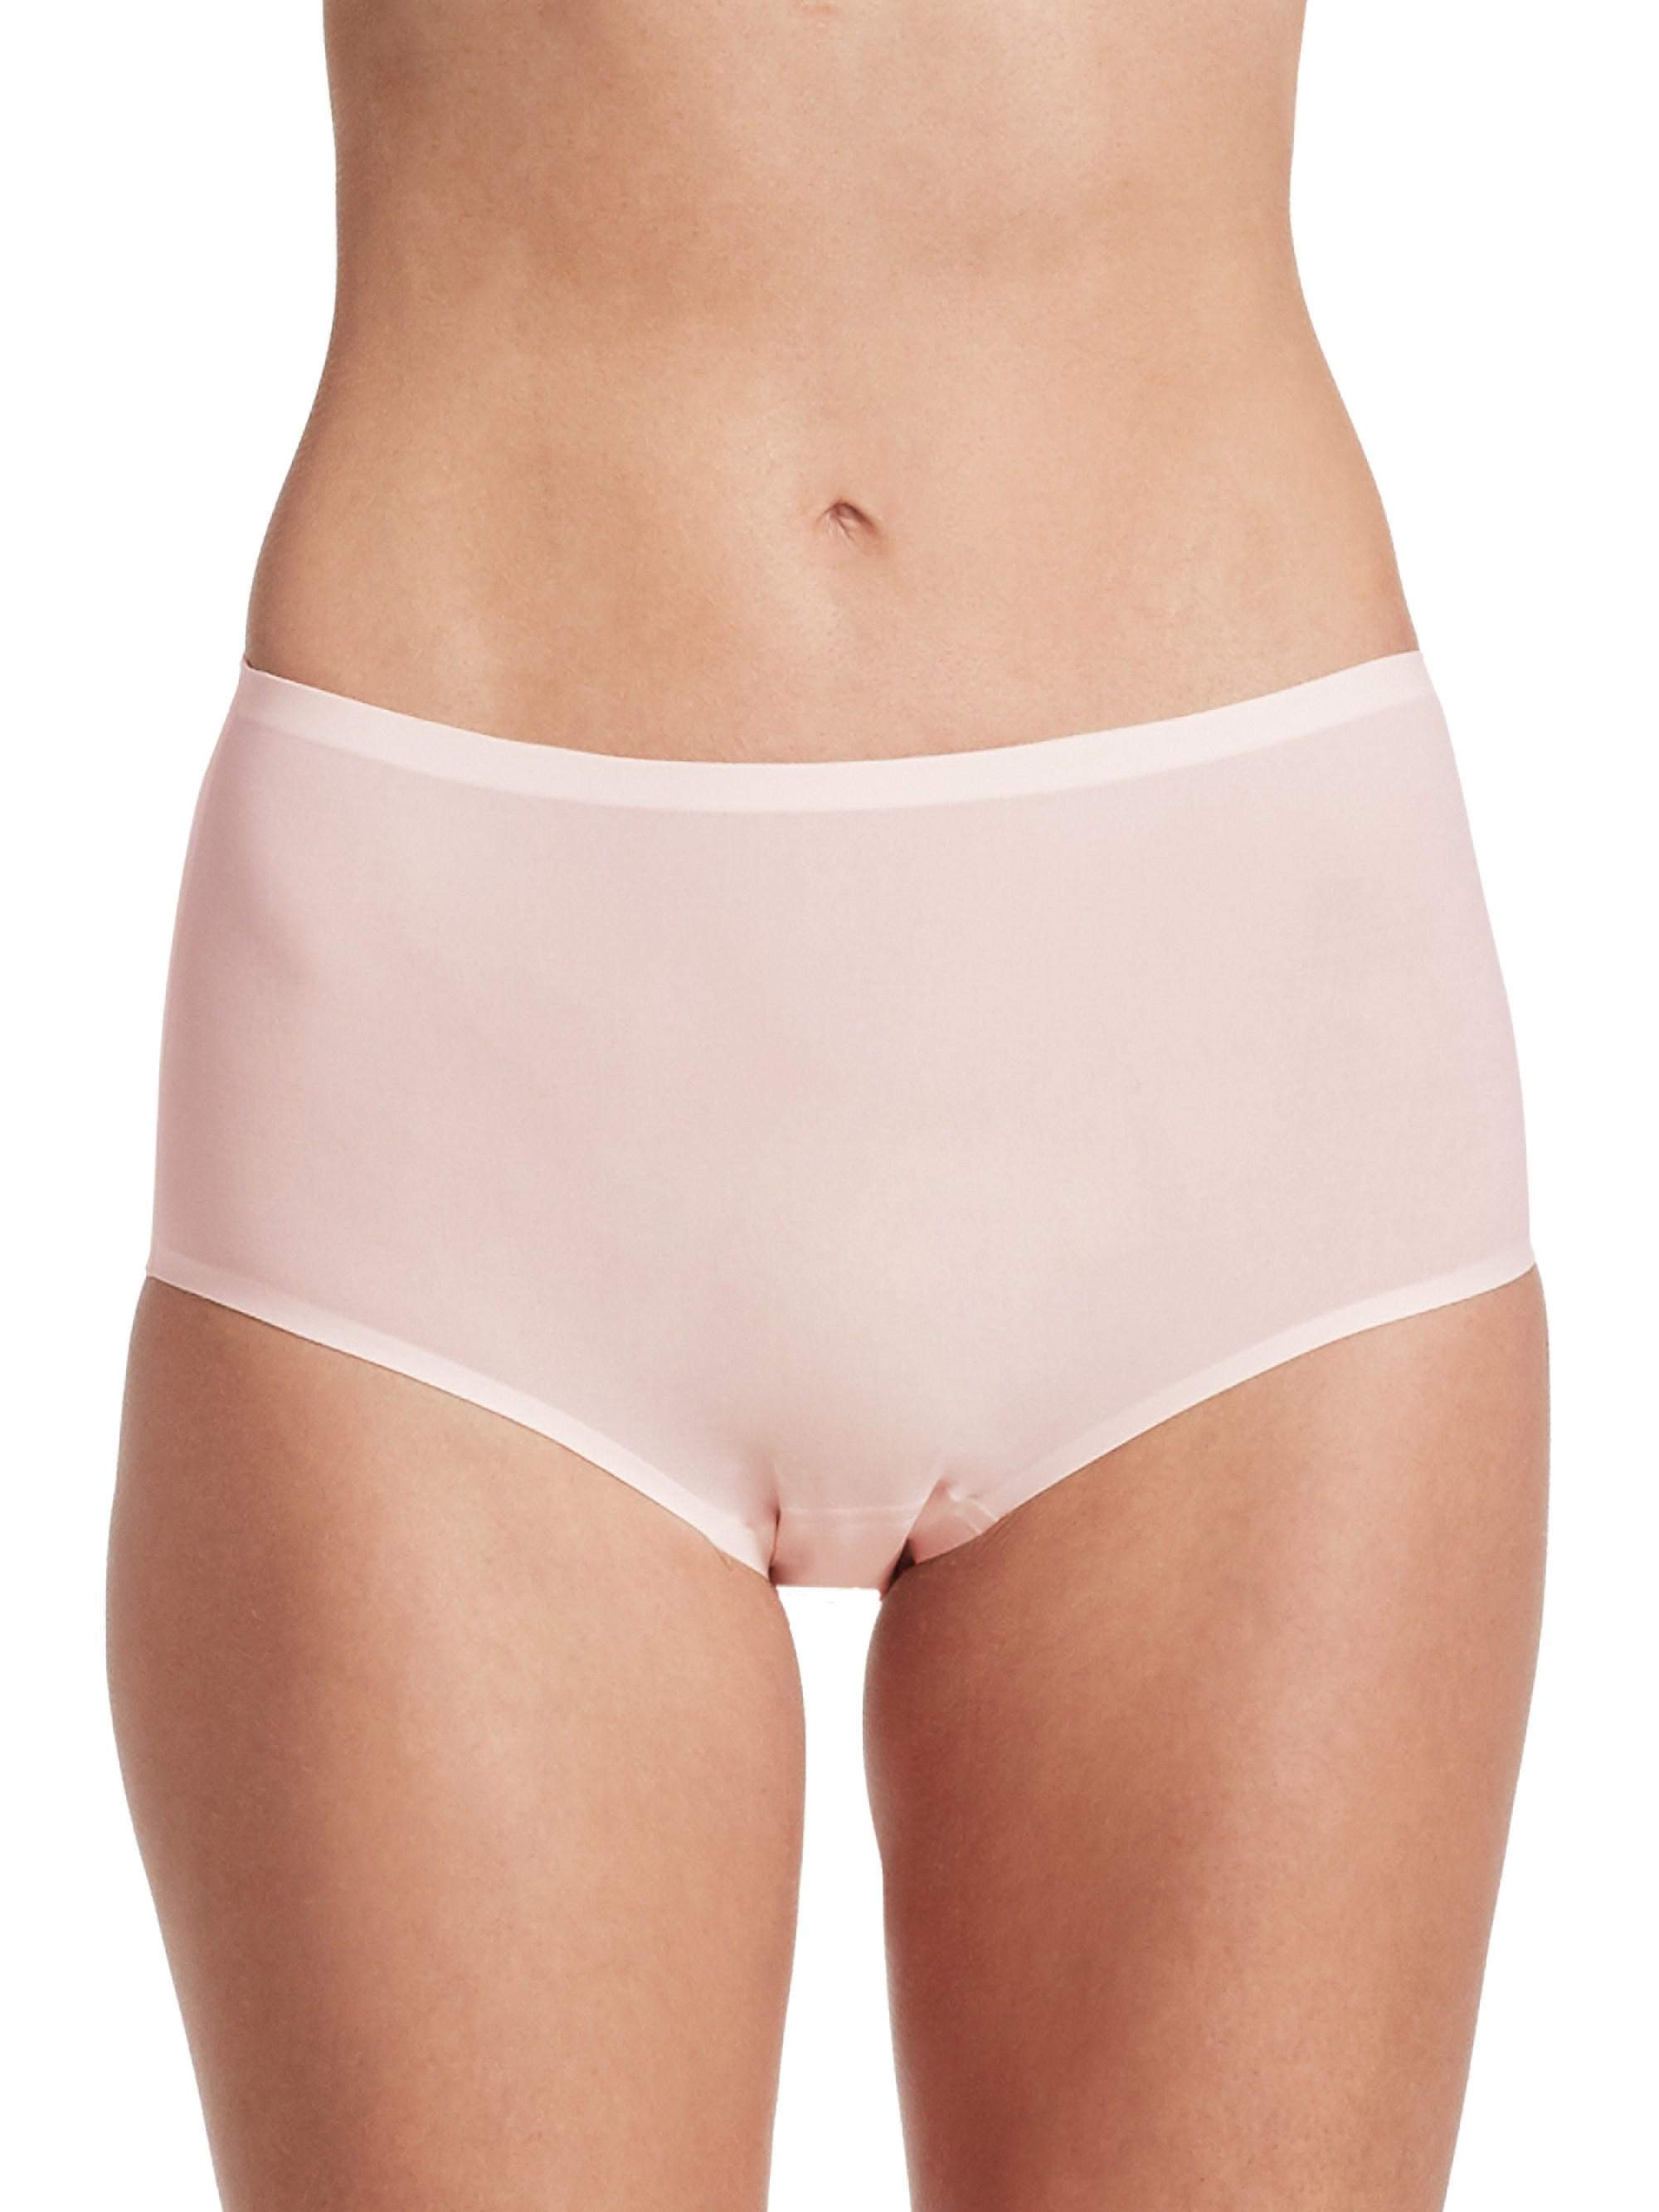 78590af19d83 Chantelle. Brown Women's Soft Stretch One Size Seamless High-rise Briefs -  Blushing Pink